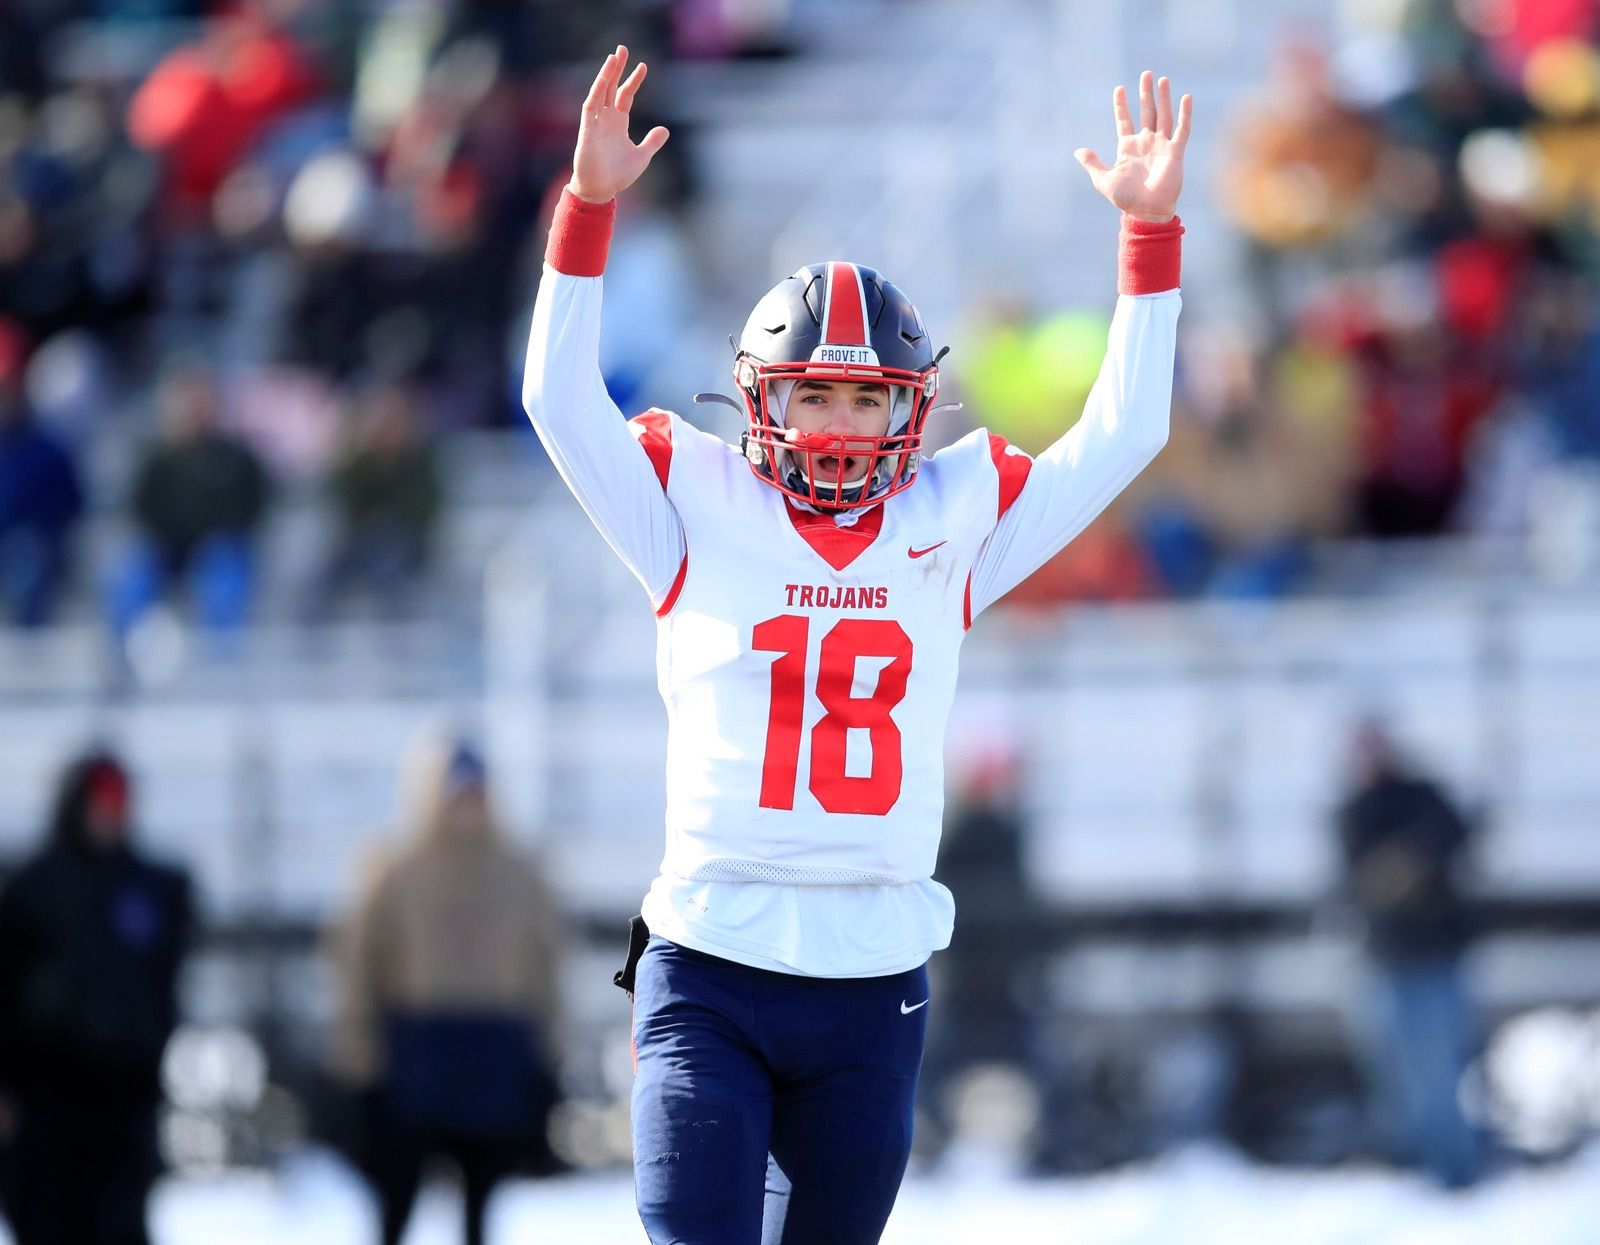 Southwestern quarterback Aidan Kennedy celebrates a Zishaun Munir touchdown against Warsaw/Letchworth during the first half of the New York State Class C Far West Regional High School football game at the State University College at Brockport on Saturday, Nov. 16, 2019.